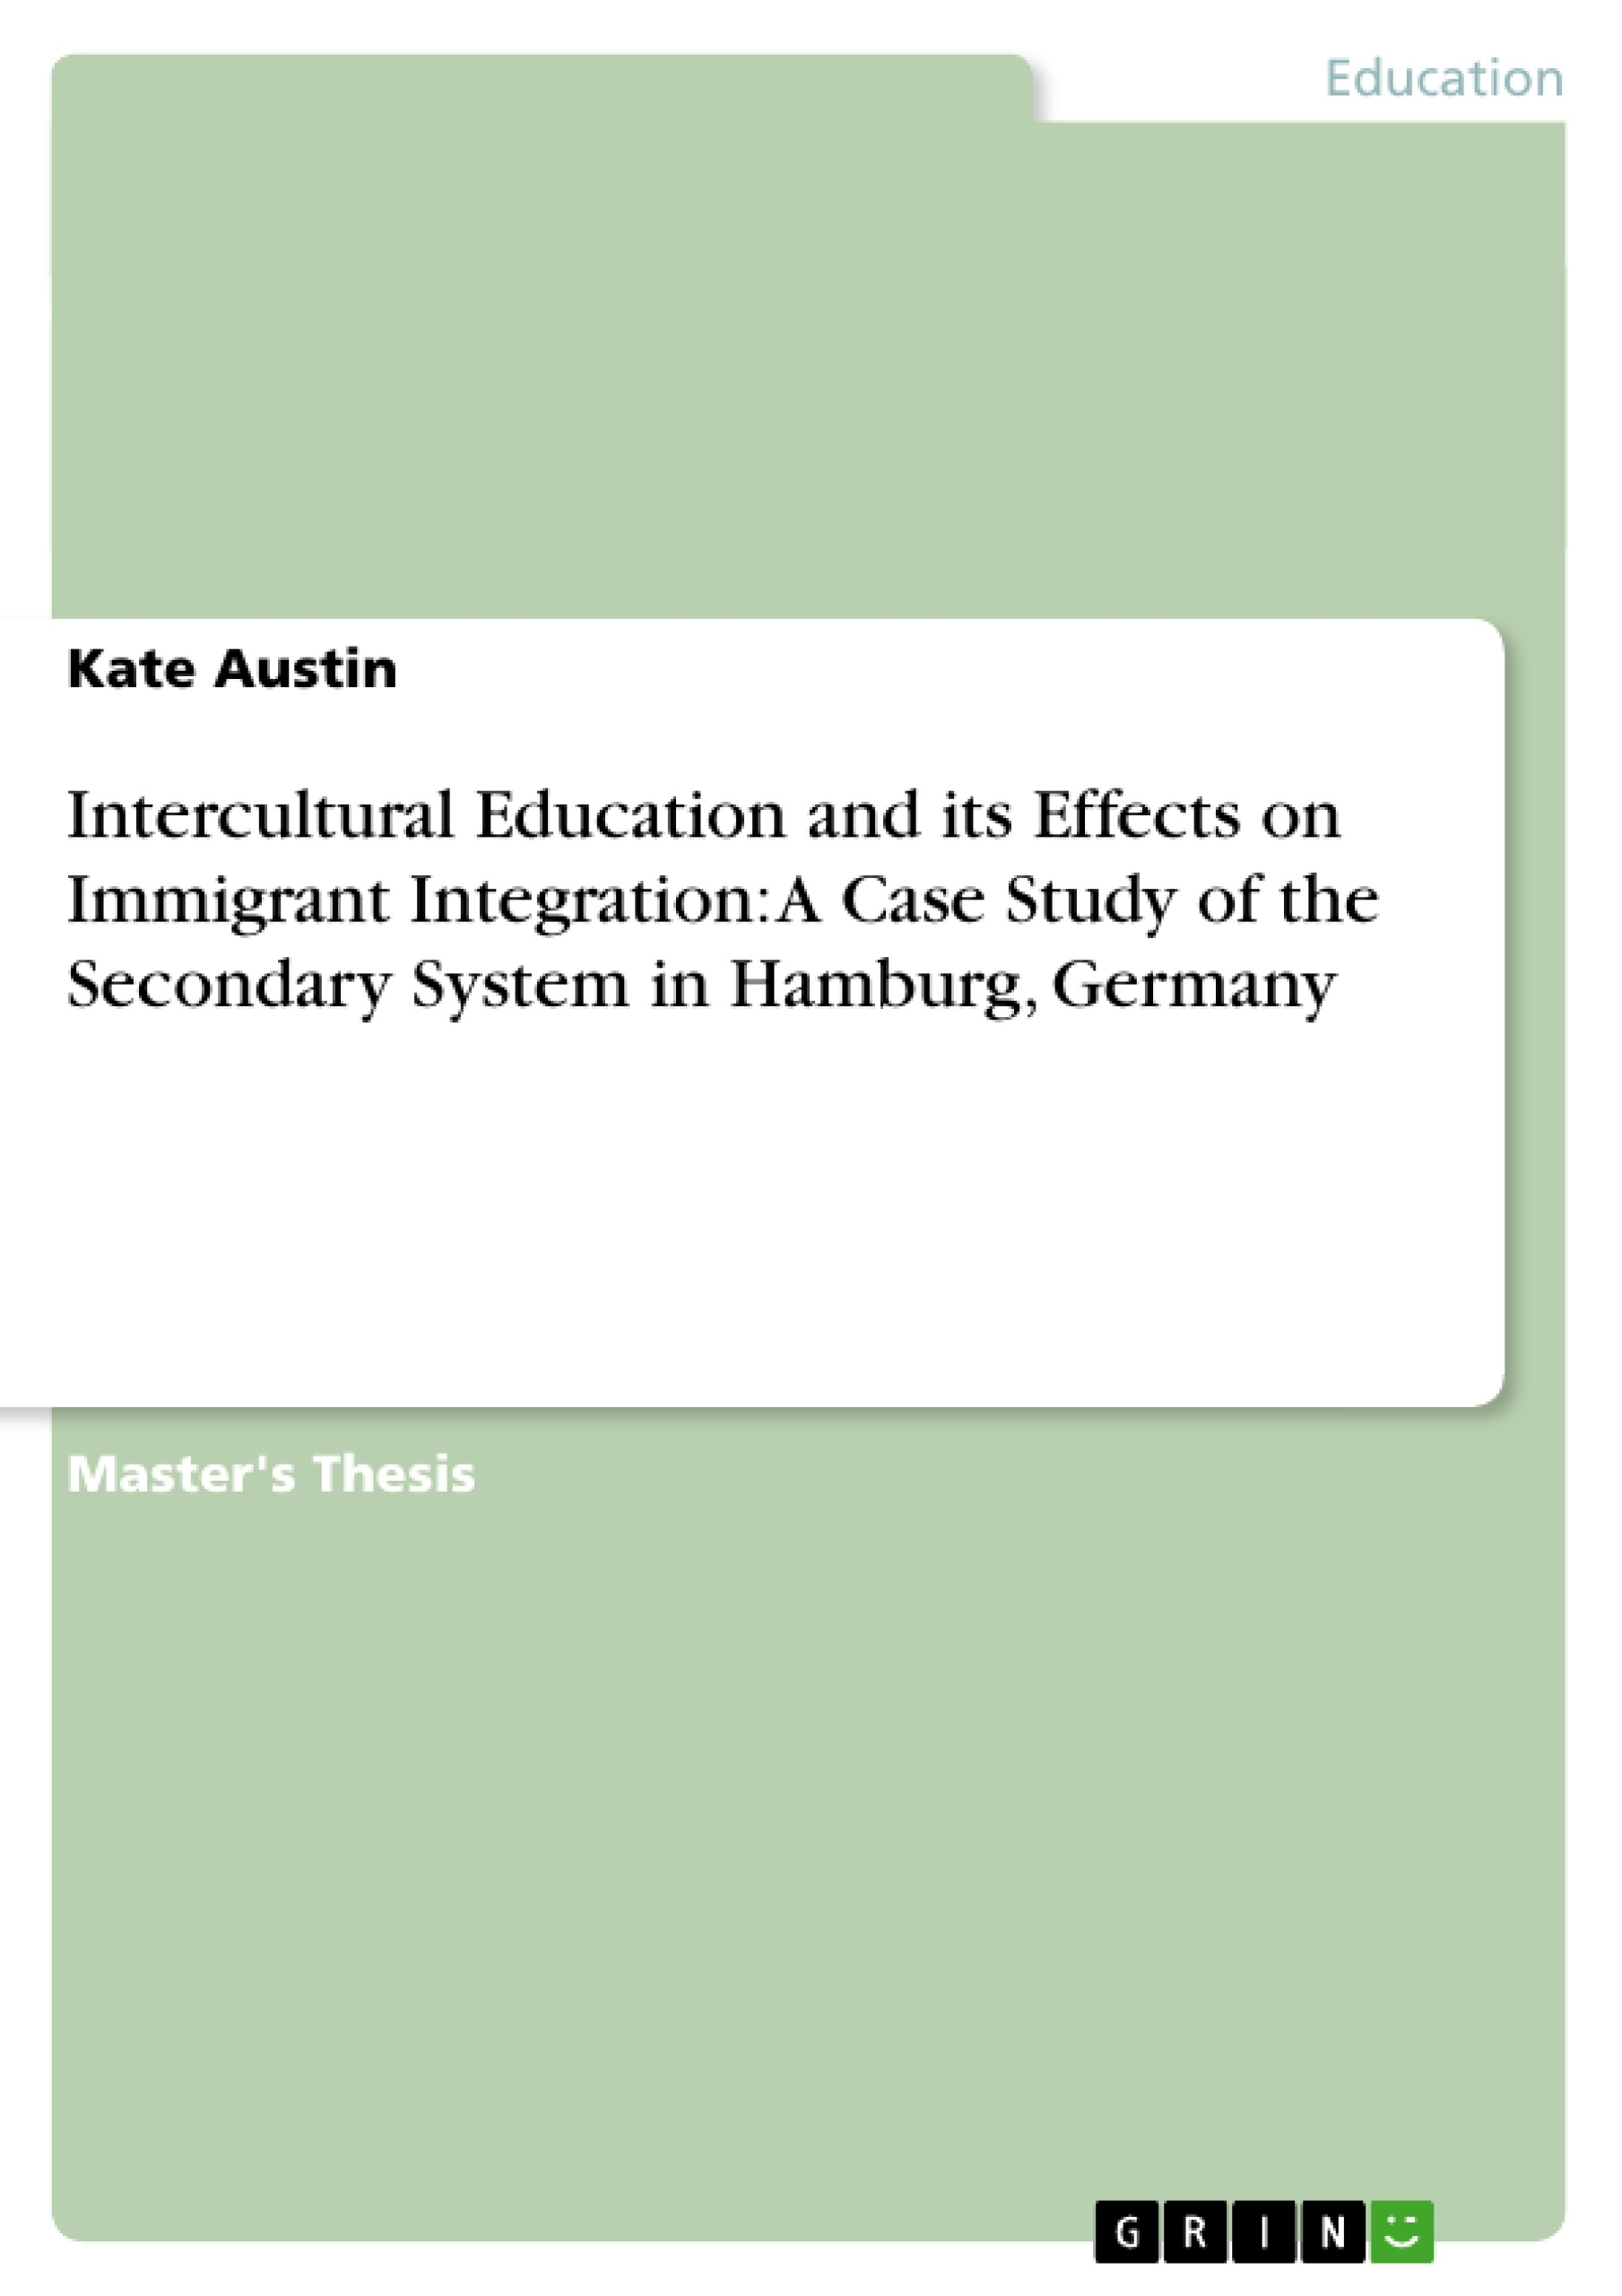 GRIN - Intercultural Education and its Effects on Immigrant Integration: A  Case Study of the Secondary System in Hamburg, Germany